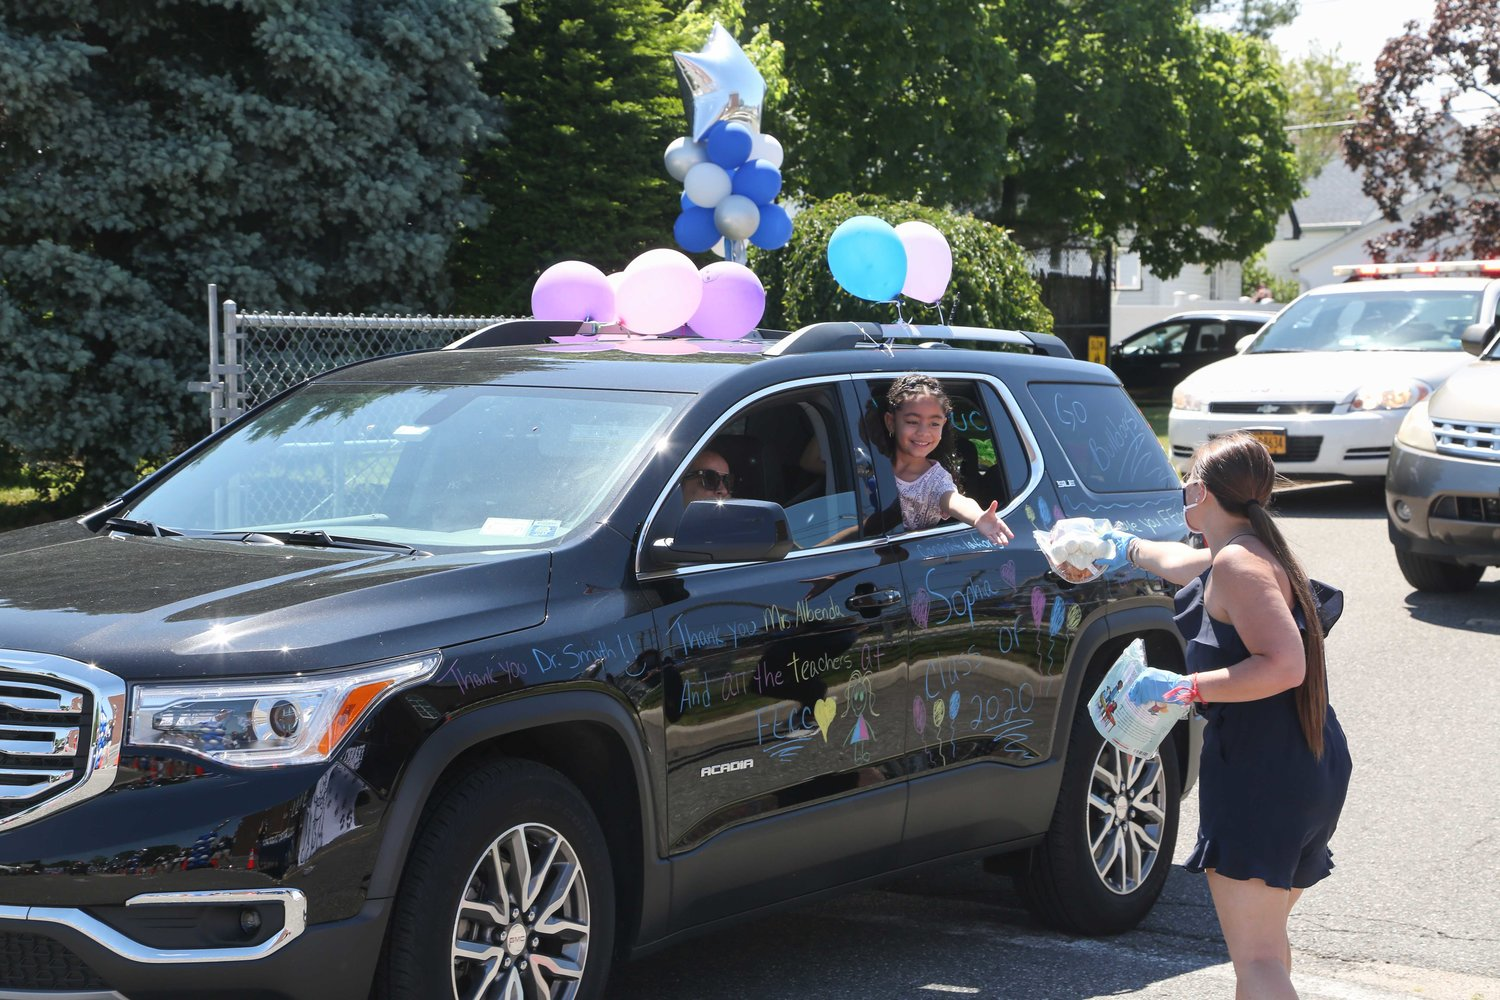 Second-grader to be Sophia received her parting gift at the car parade.